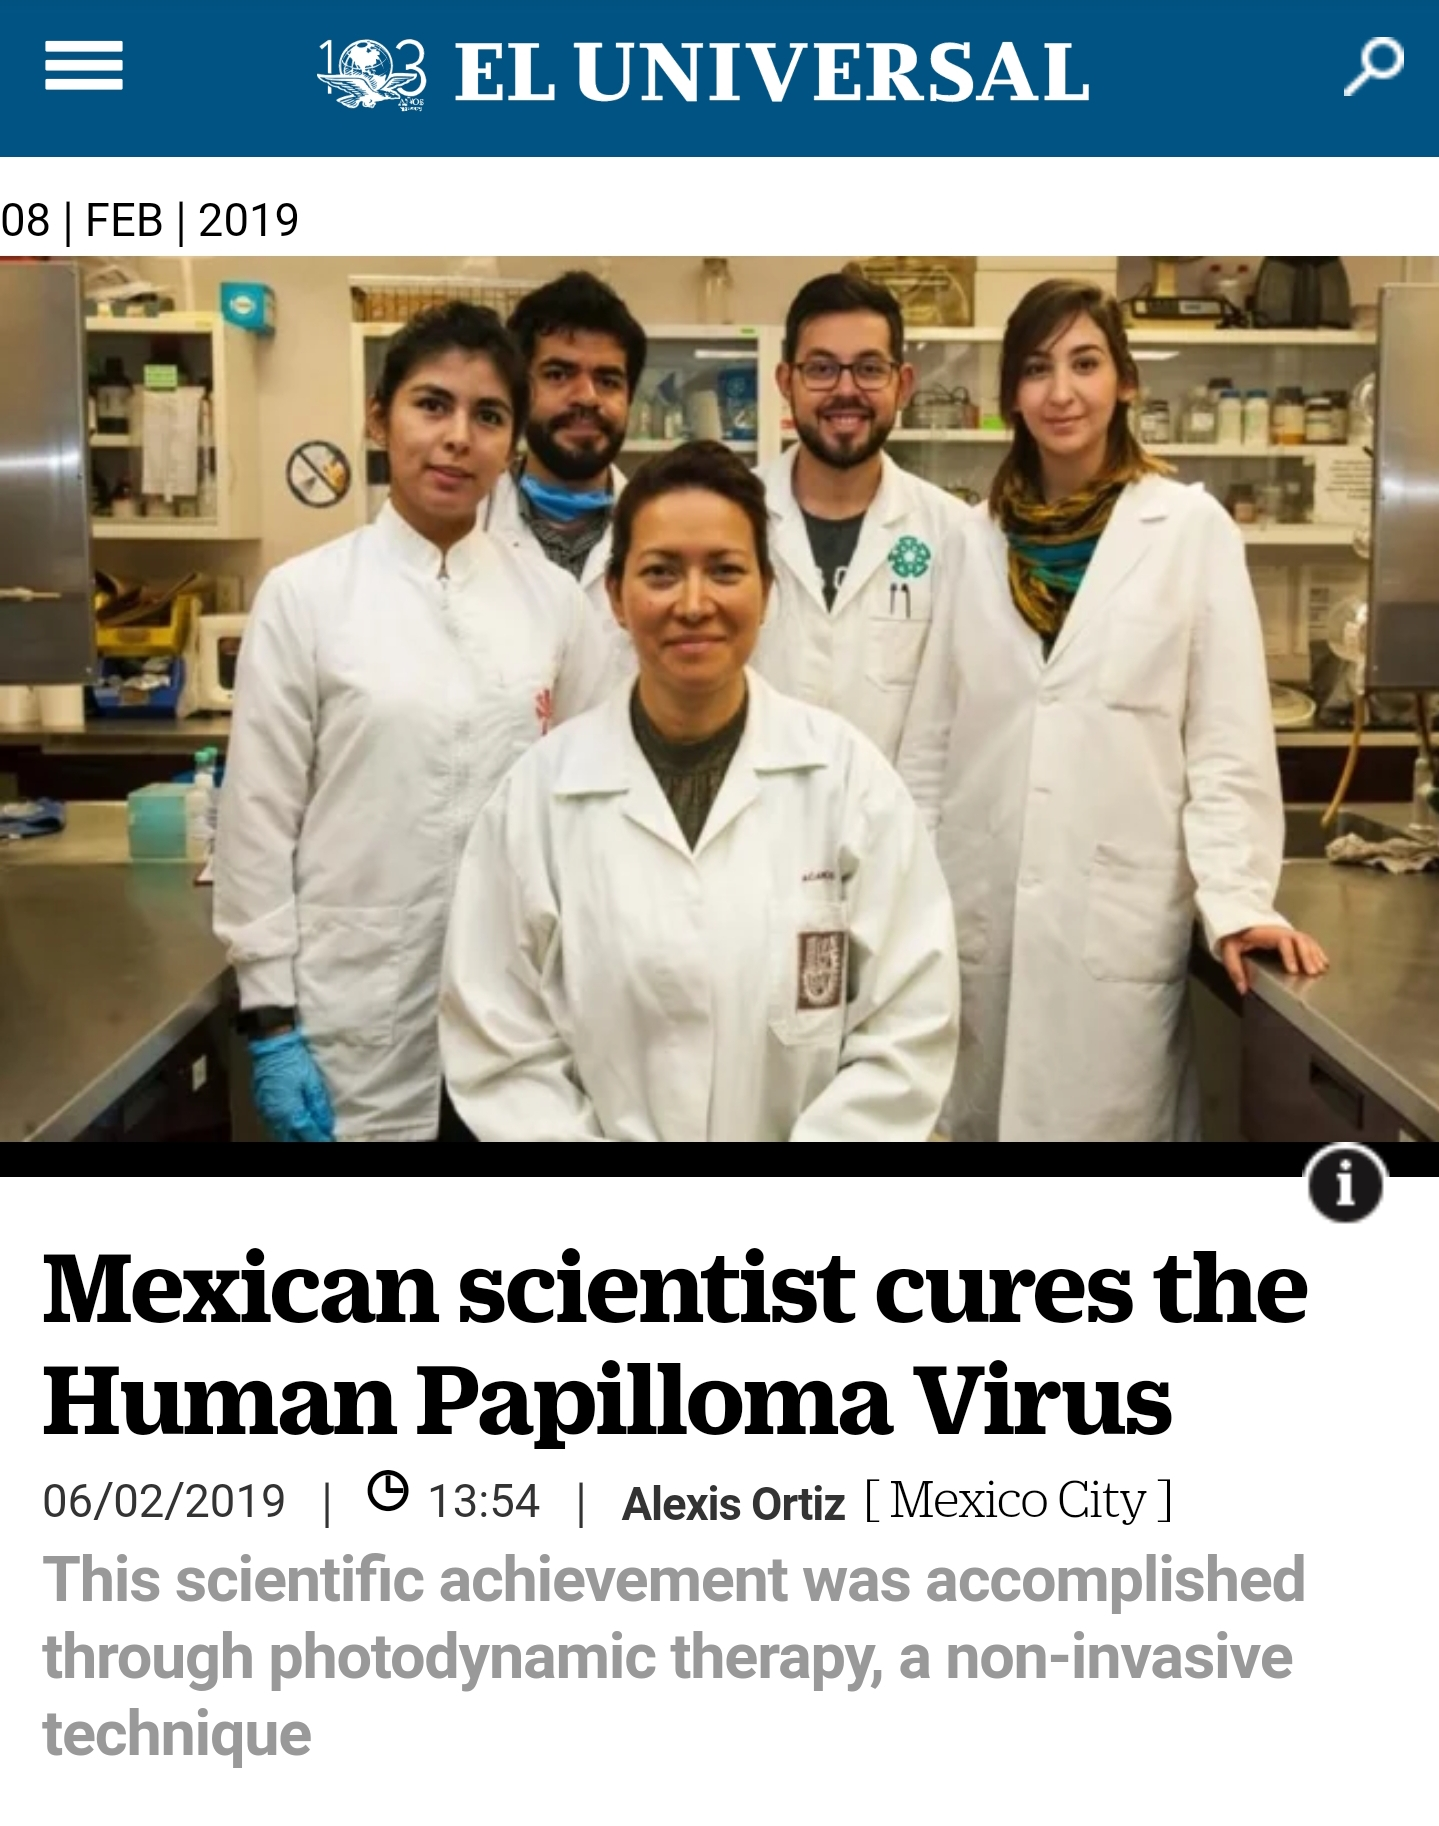 hpv cure mexican scientist